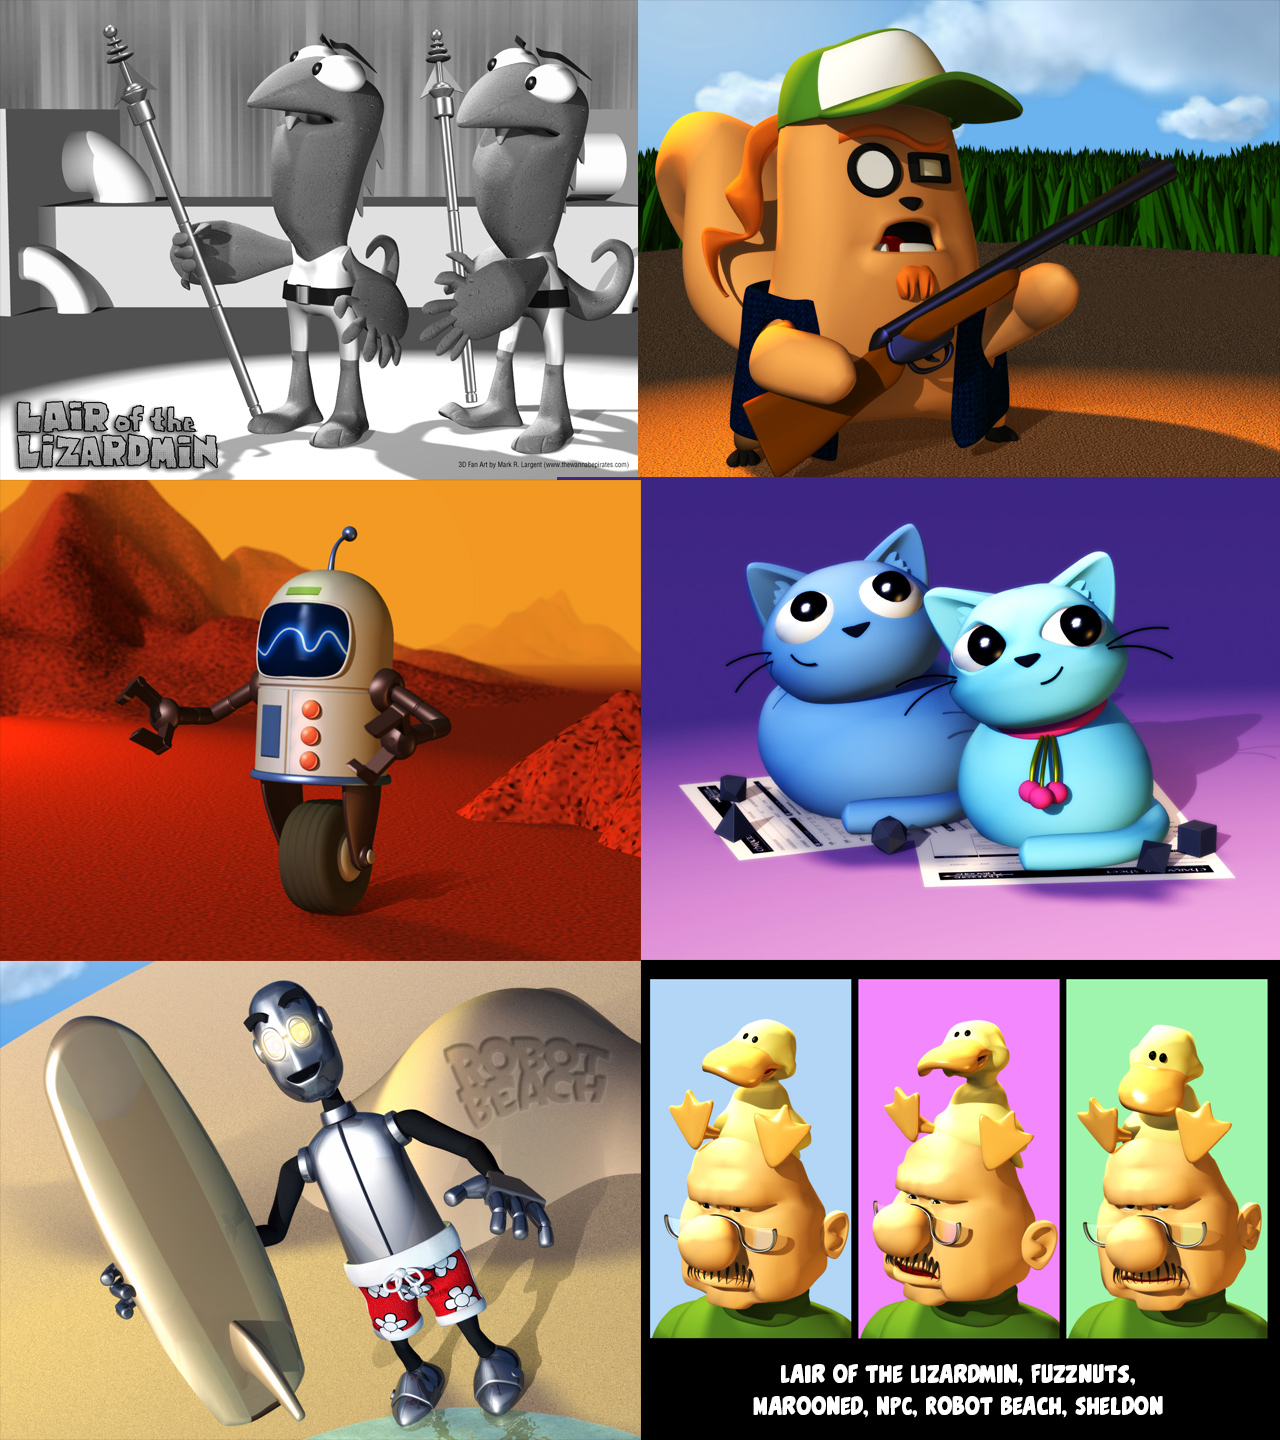 Some 3D Fan art I did a couple of years ago for some of my favorite webcomics.